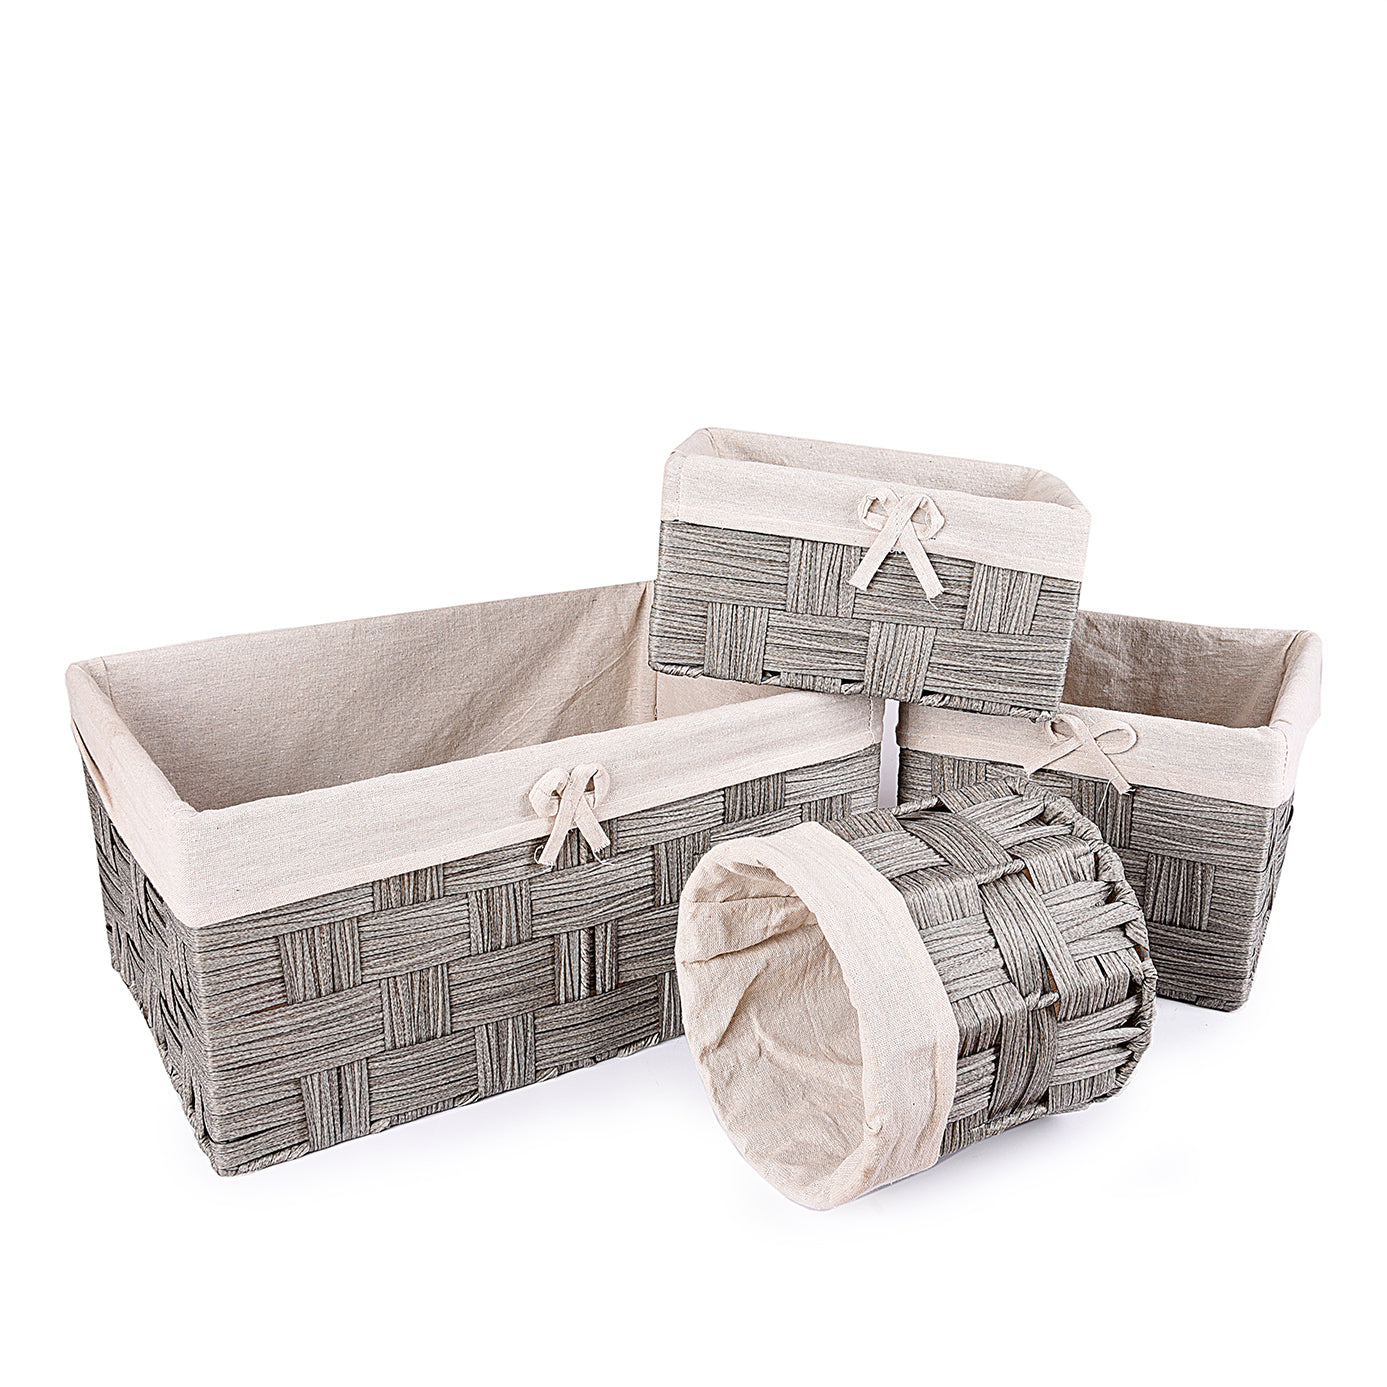 Gray Textured Towel basket  (Set of 4)